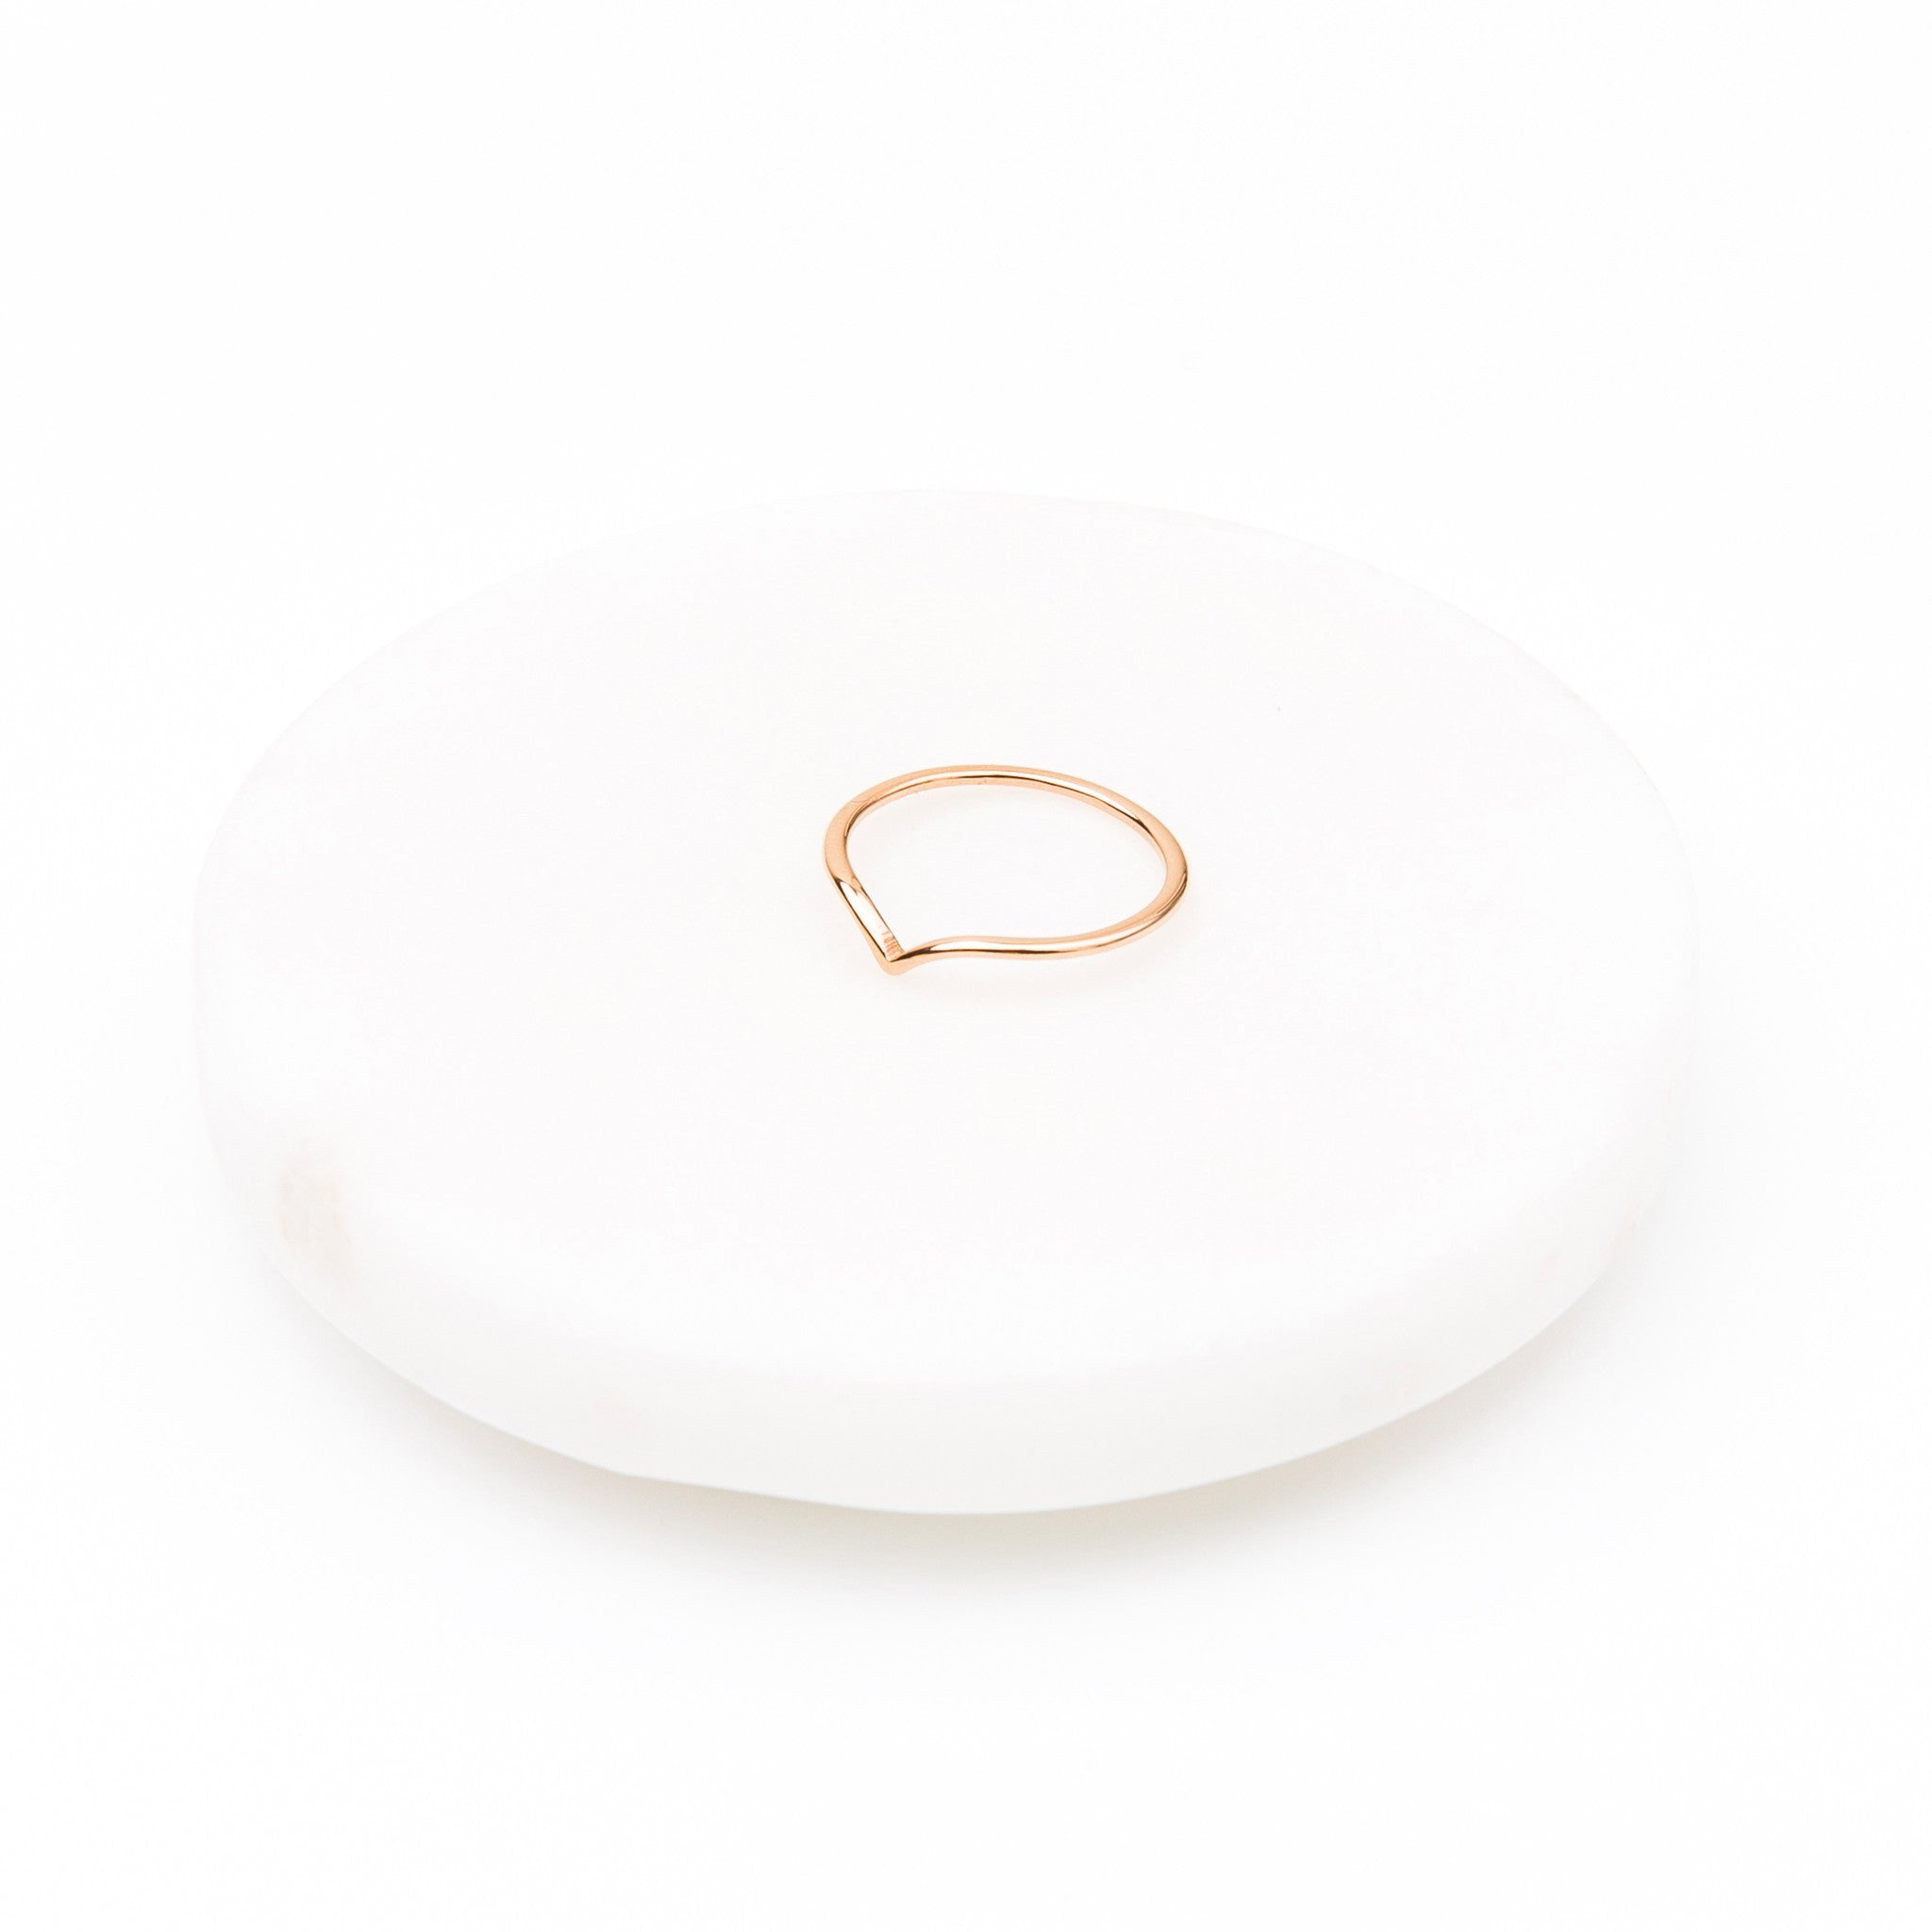 'Monet' Dip Ring